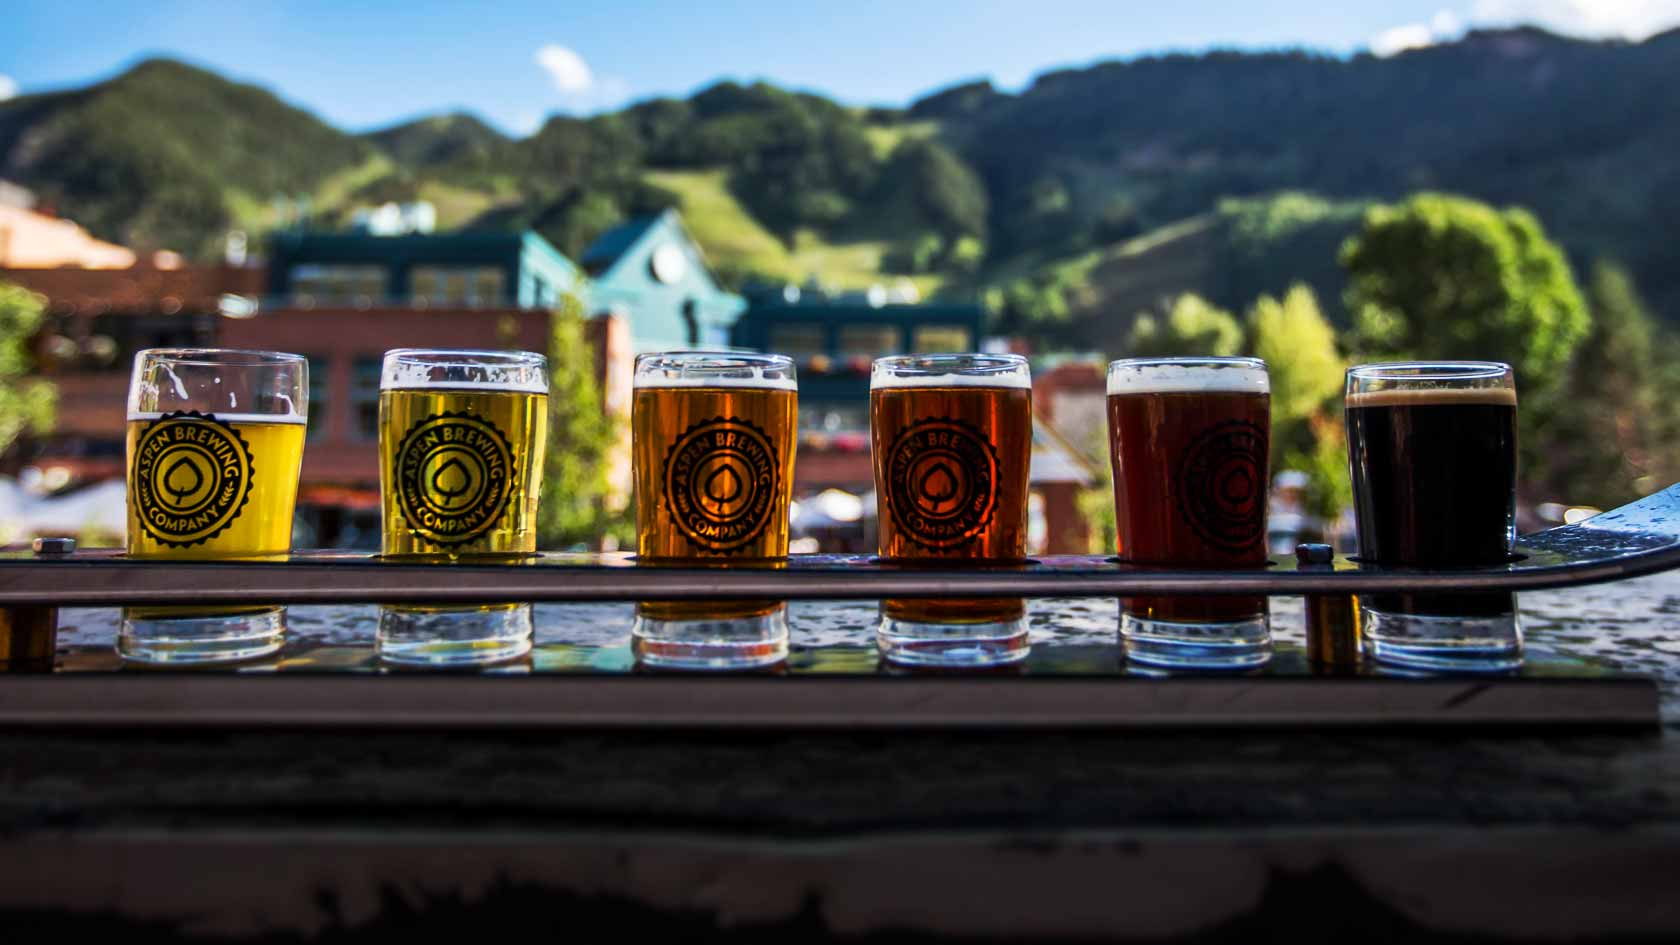 Drinking local beers while in Aspen is a must do!